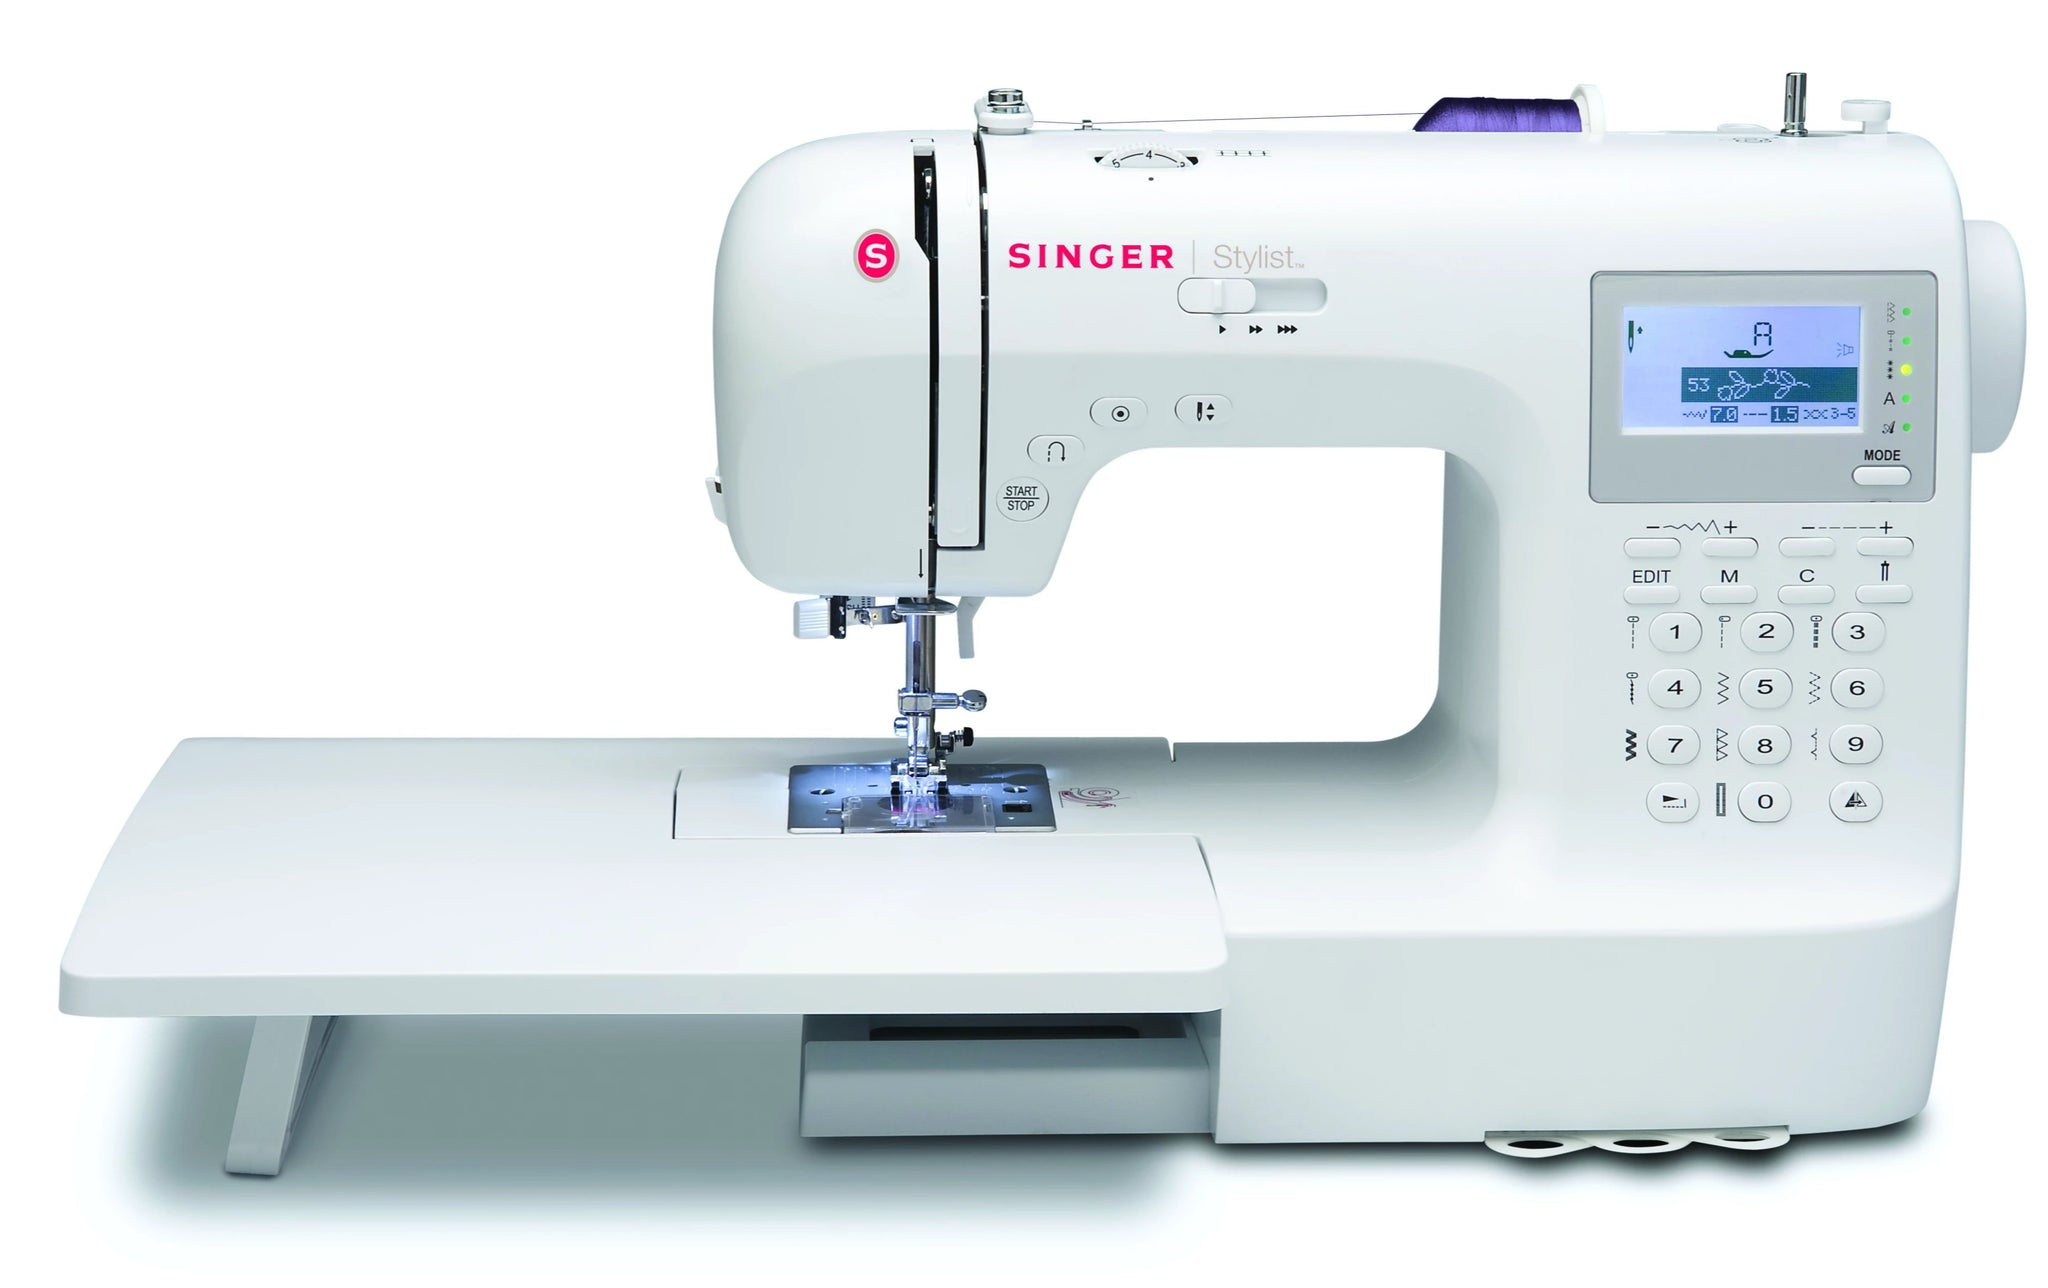 Singer Stylist 9100 - latest 2020 model with Free Extension Table * 400 stitch patterns inc. Letters and numbers, Auto Tension - Preorder for September Delivery